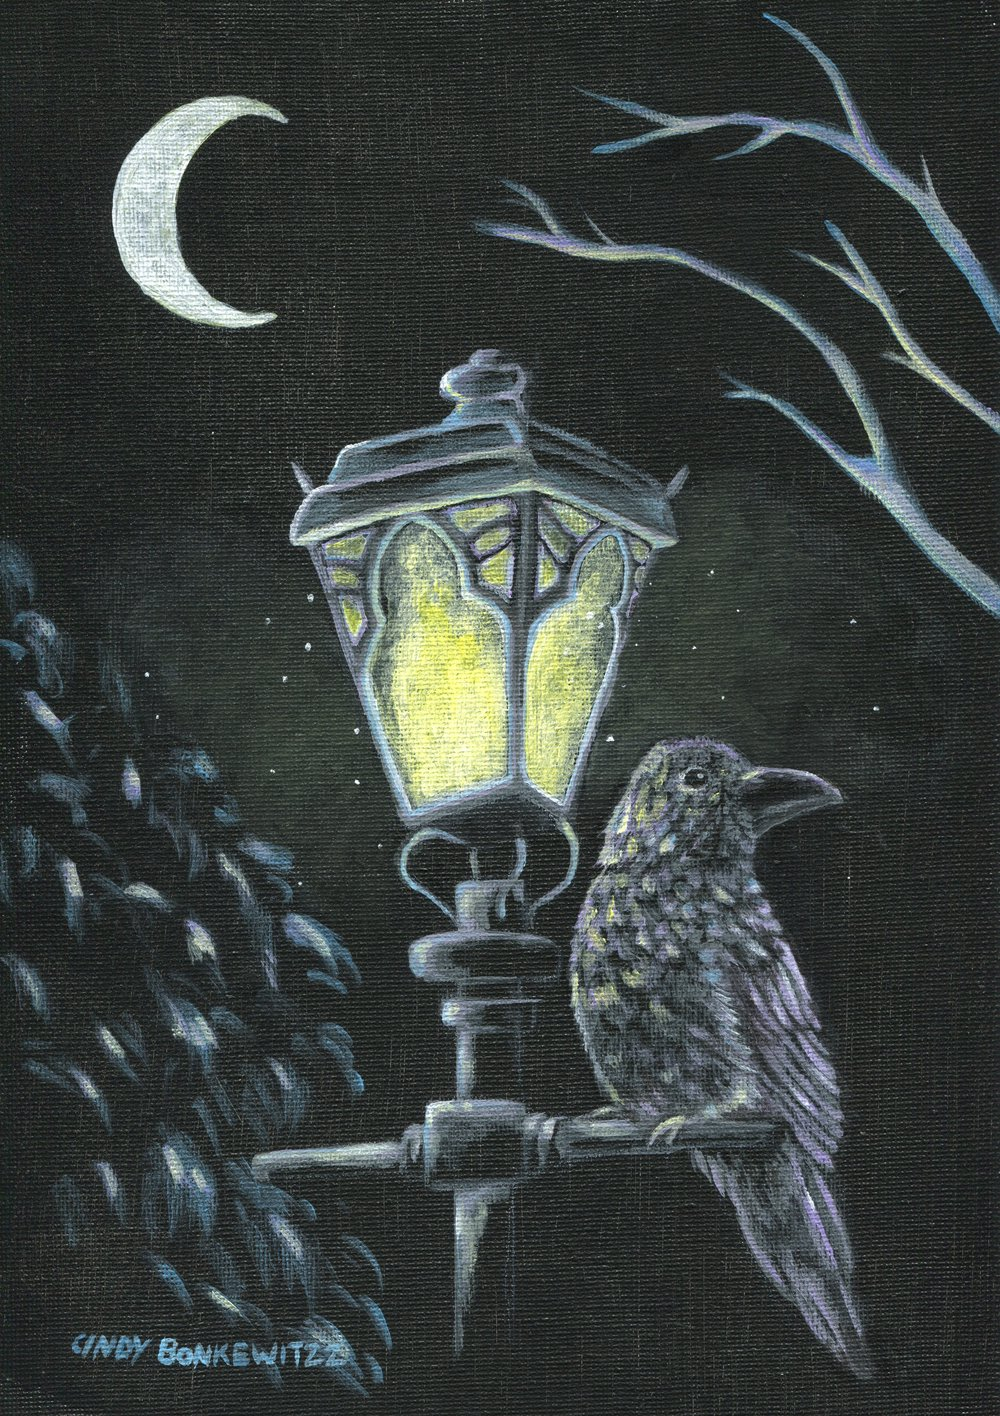 15A  Cindy Bonkewitzz  Night light  acrylic on canvas panel